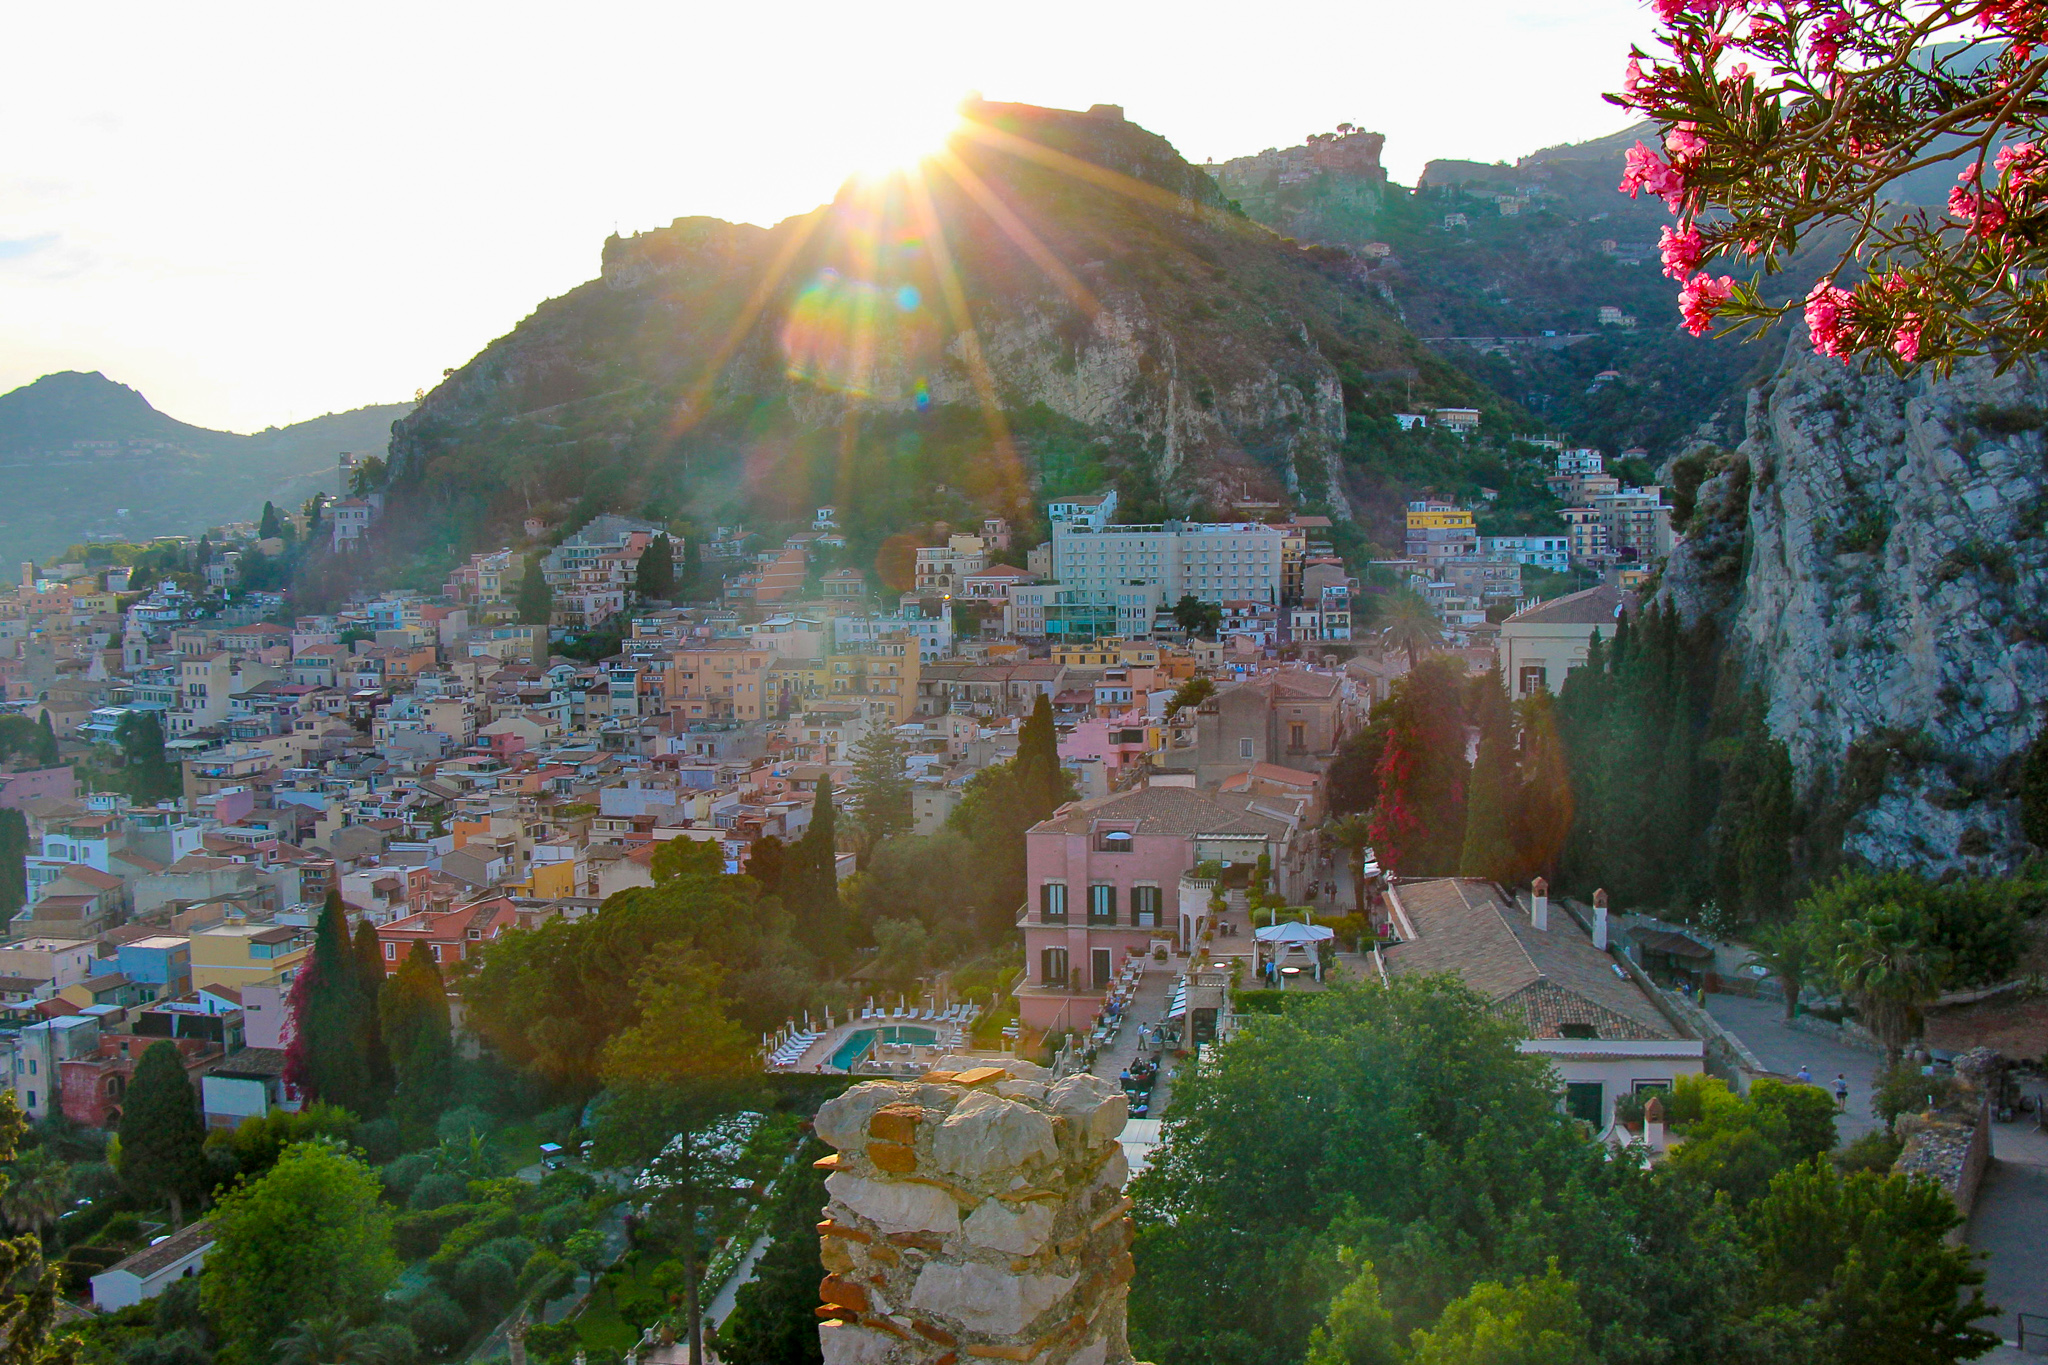 Taormina Sicily Scenery at Sunset in Italy